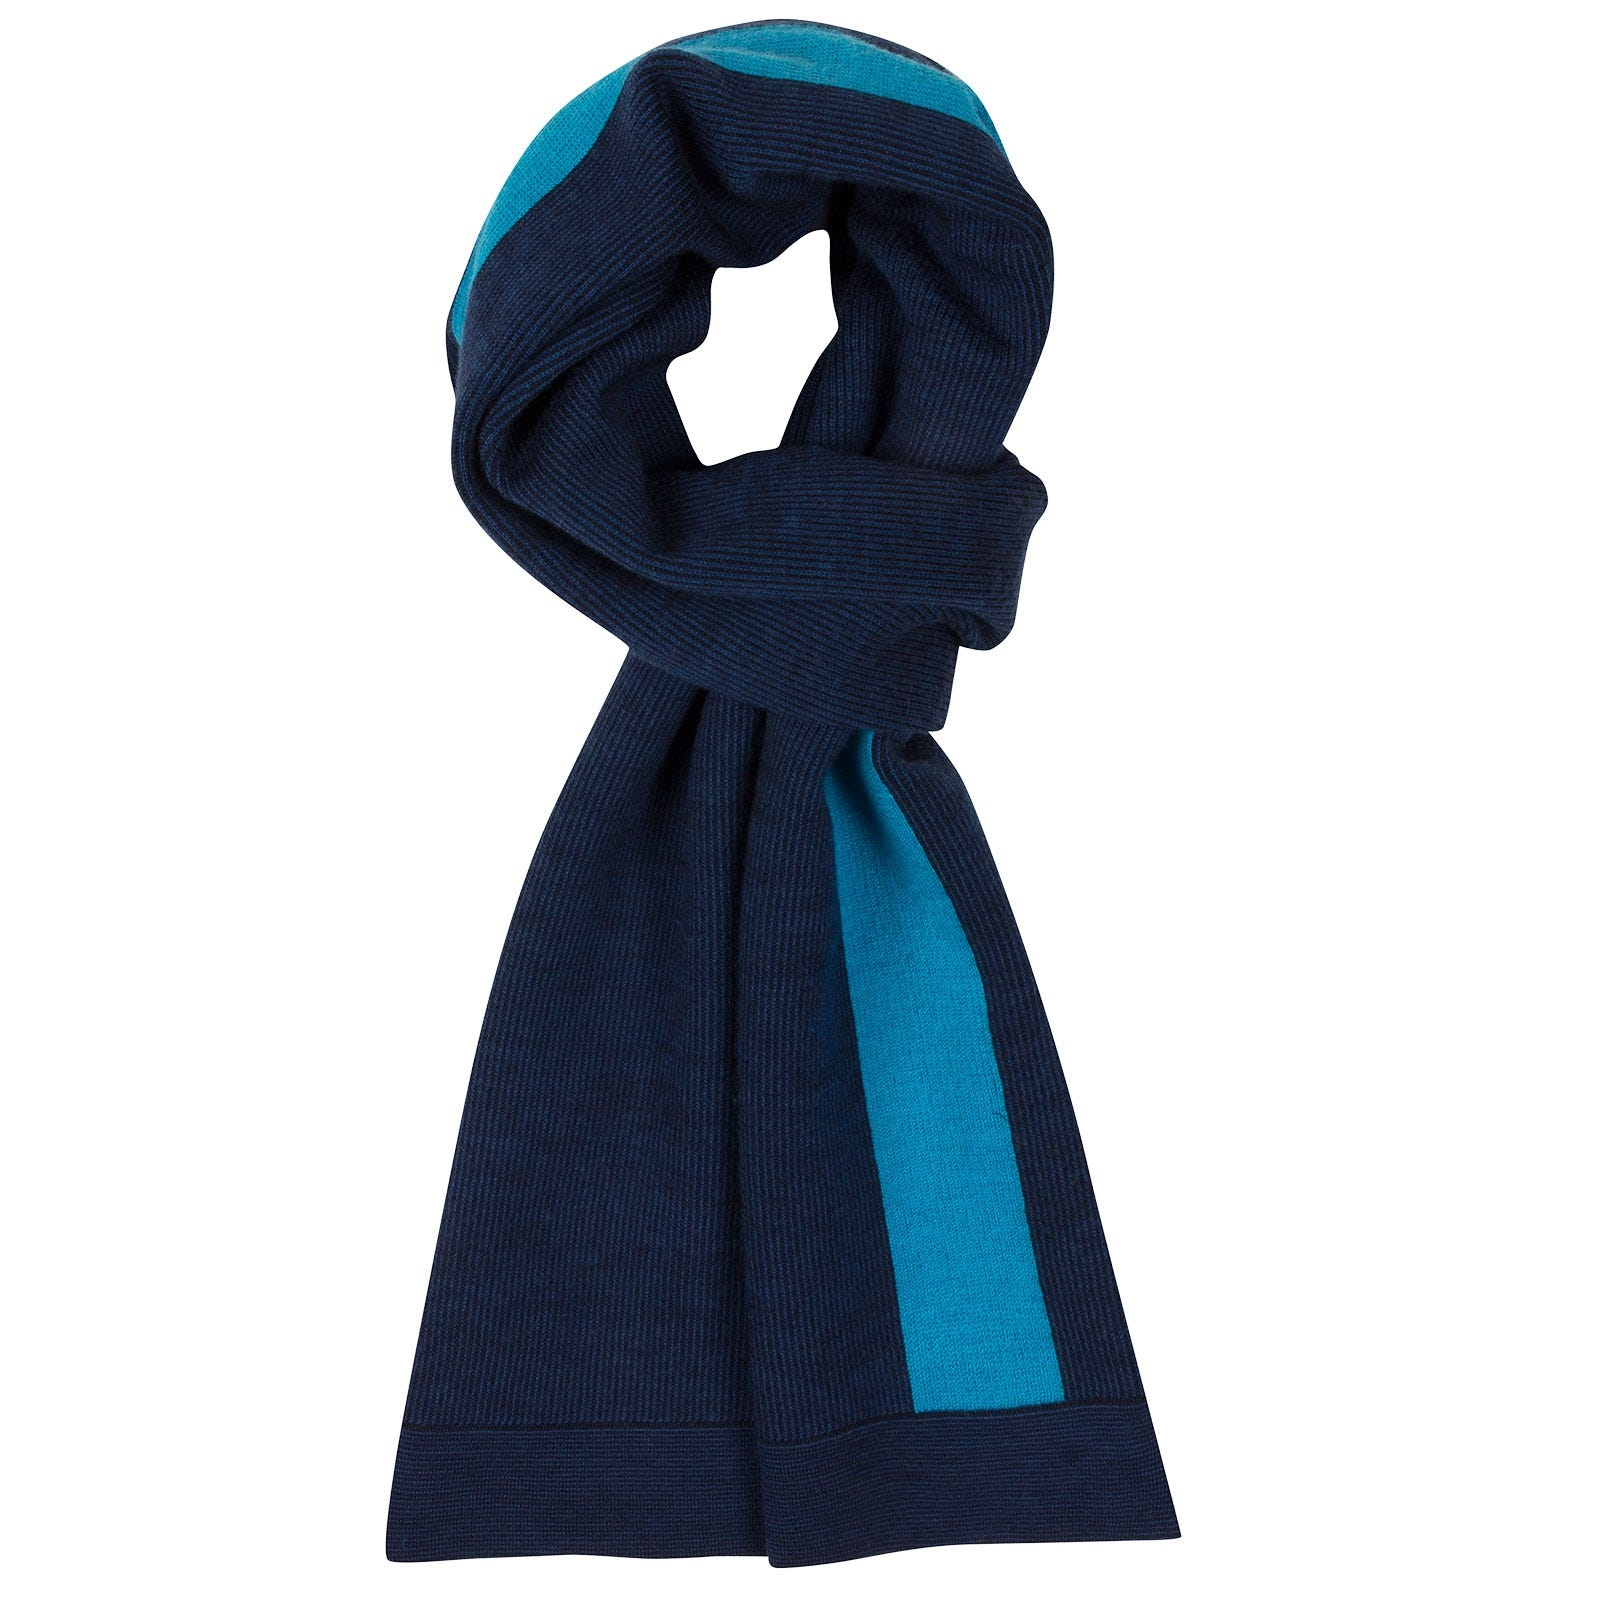 John Smedley Humidity Merino Wool Scarf in Midnight-ONE